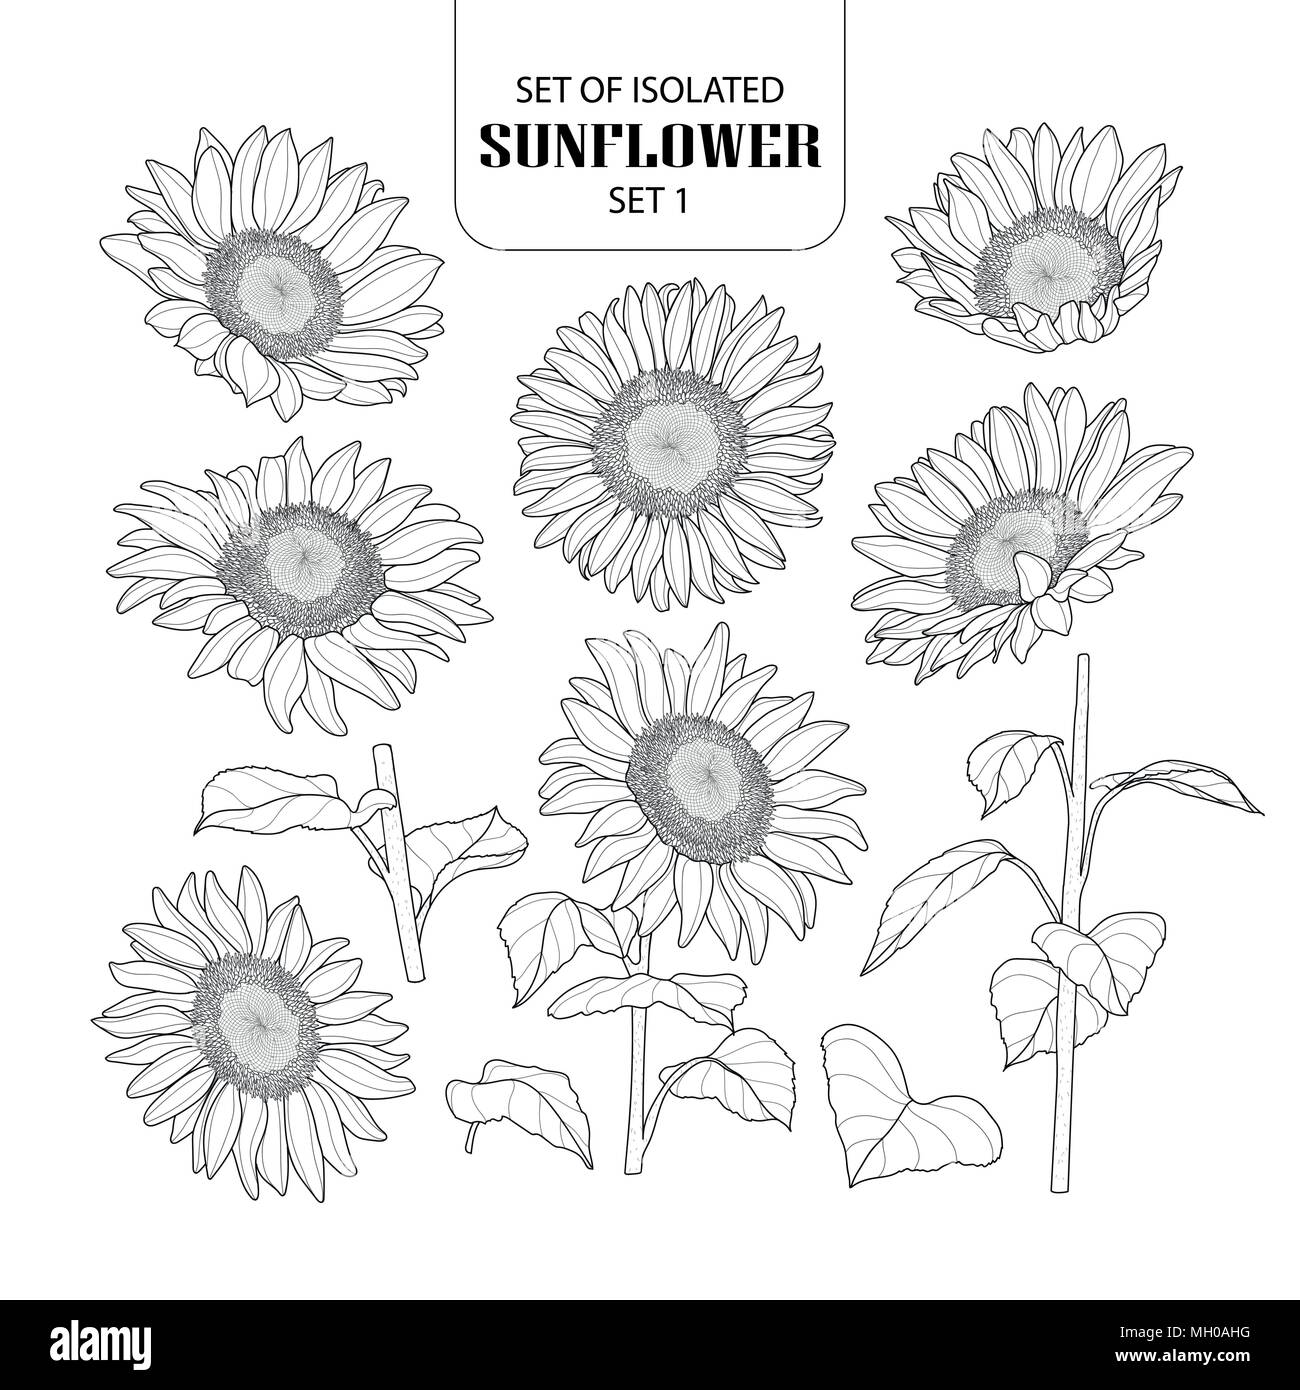 Set Of Isolated Sunflower Set 1 Cute Hand Drawn Vector Illustration In Black Outline And White Plane On White Background Stock Vector Image Art Alamy Here presented 40+ sunflower outline drawing images for free to download, print or share. https www alamy com set of isolated sunflower set 1 cute hand drawn vector illustration in black outline and white plane on white background image182561164 html